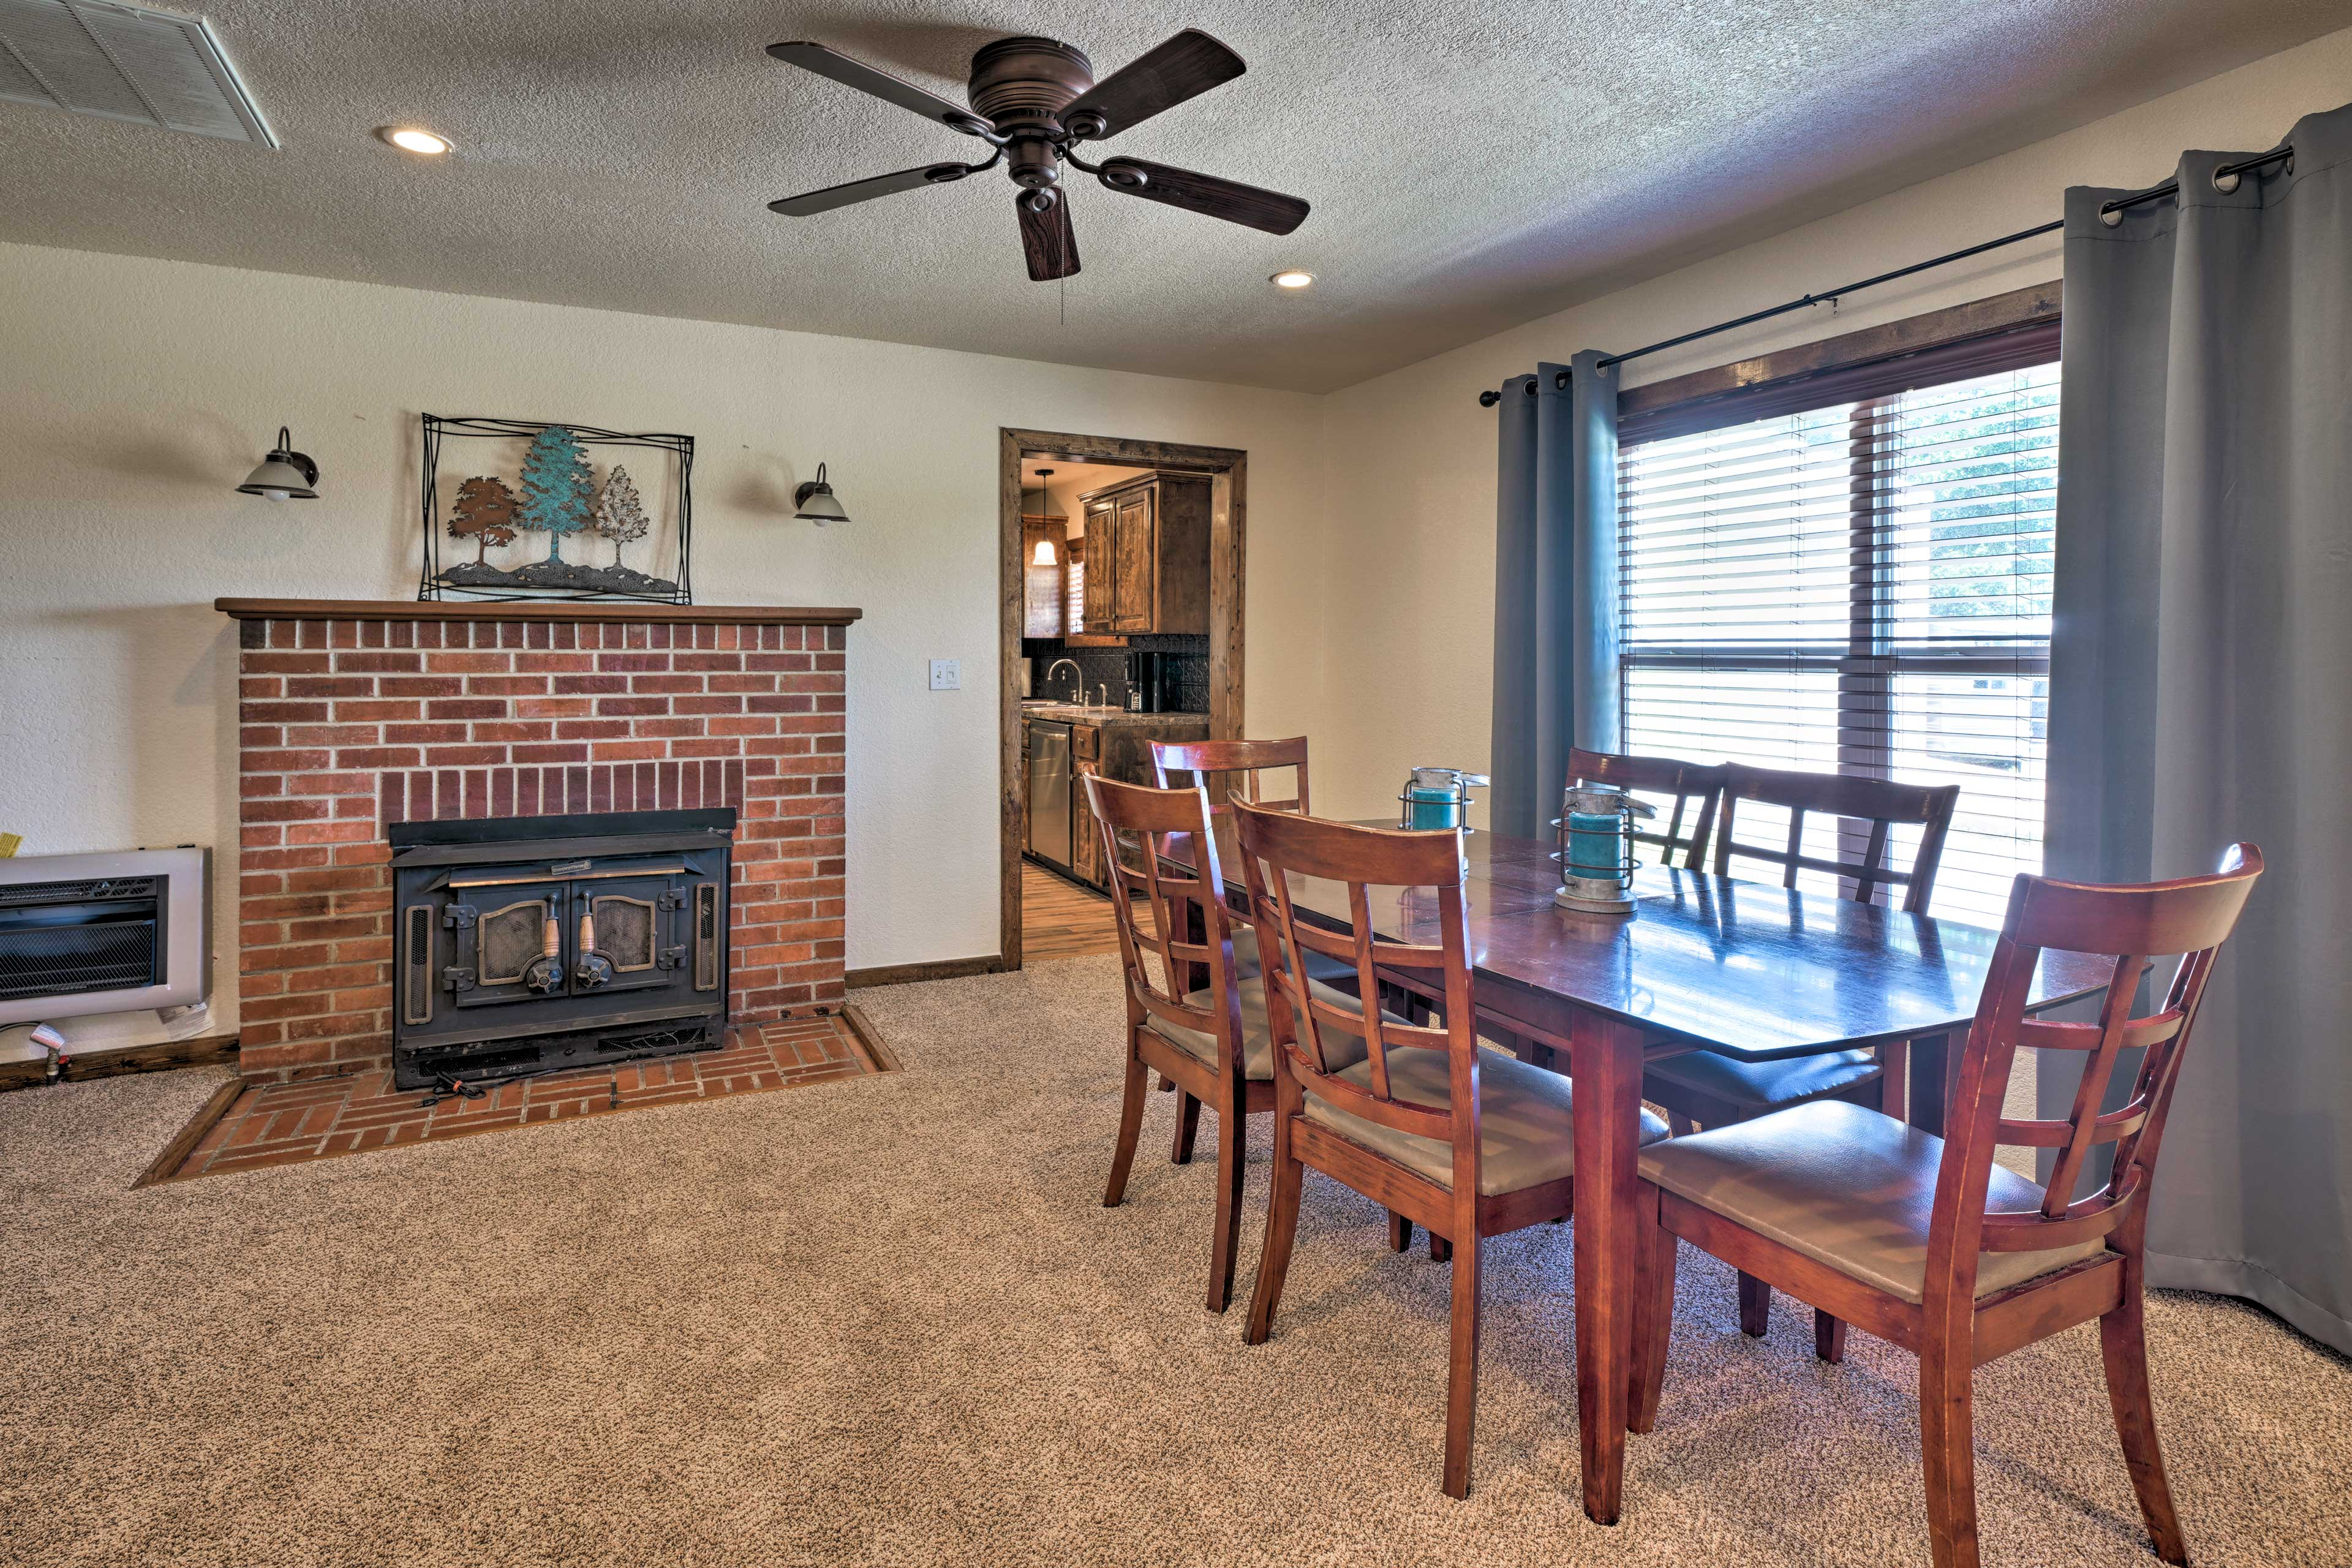 Savor home-cooked meals at the 6-person hardwood dining table.